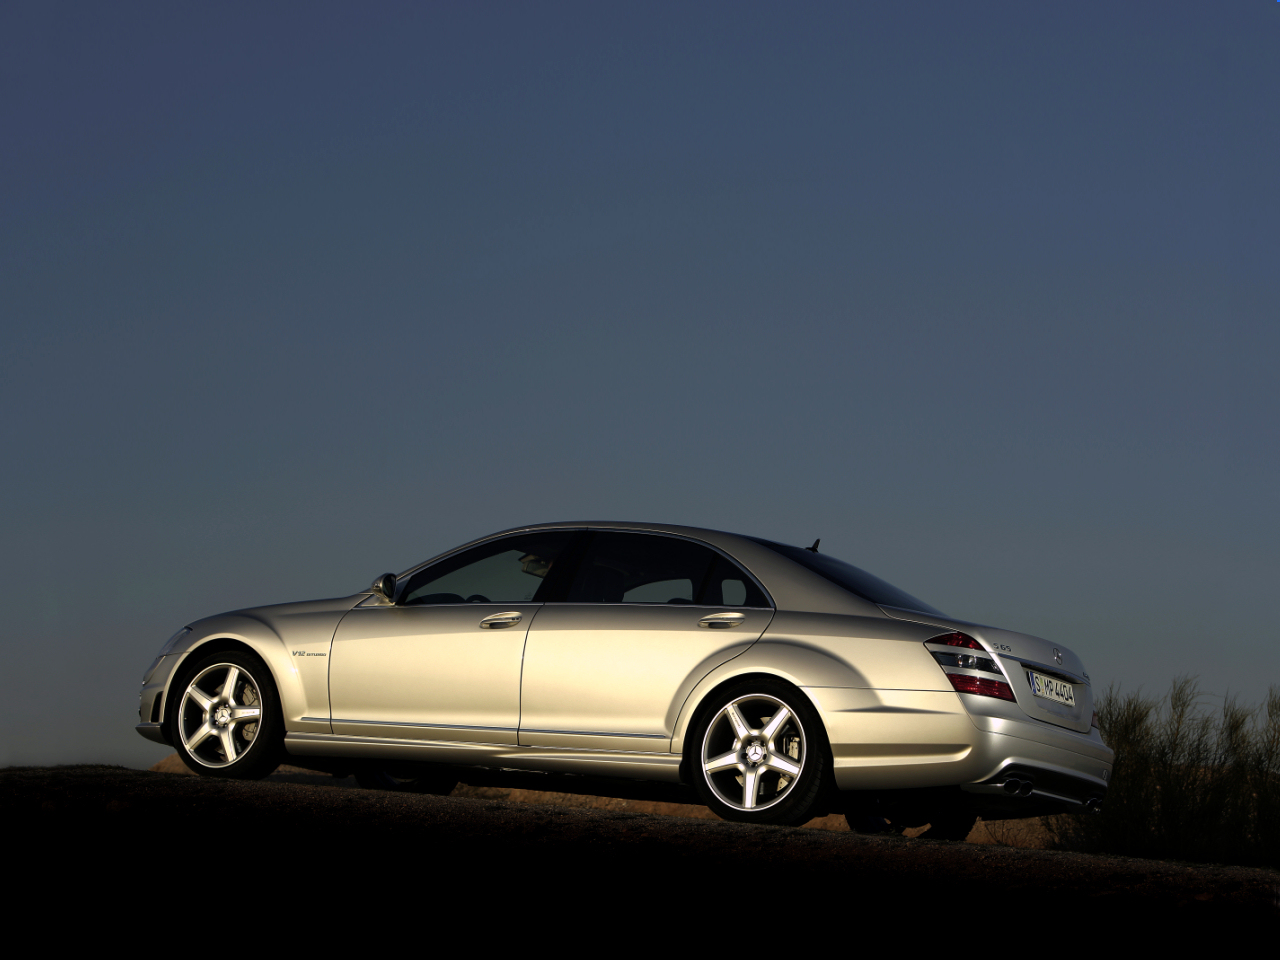 Mercedes-Benz S 65 AMG in the sunset